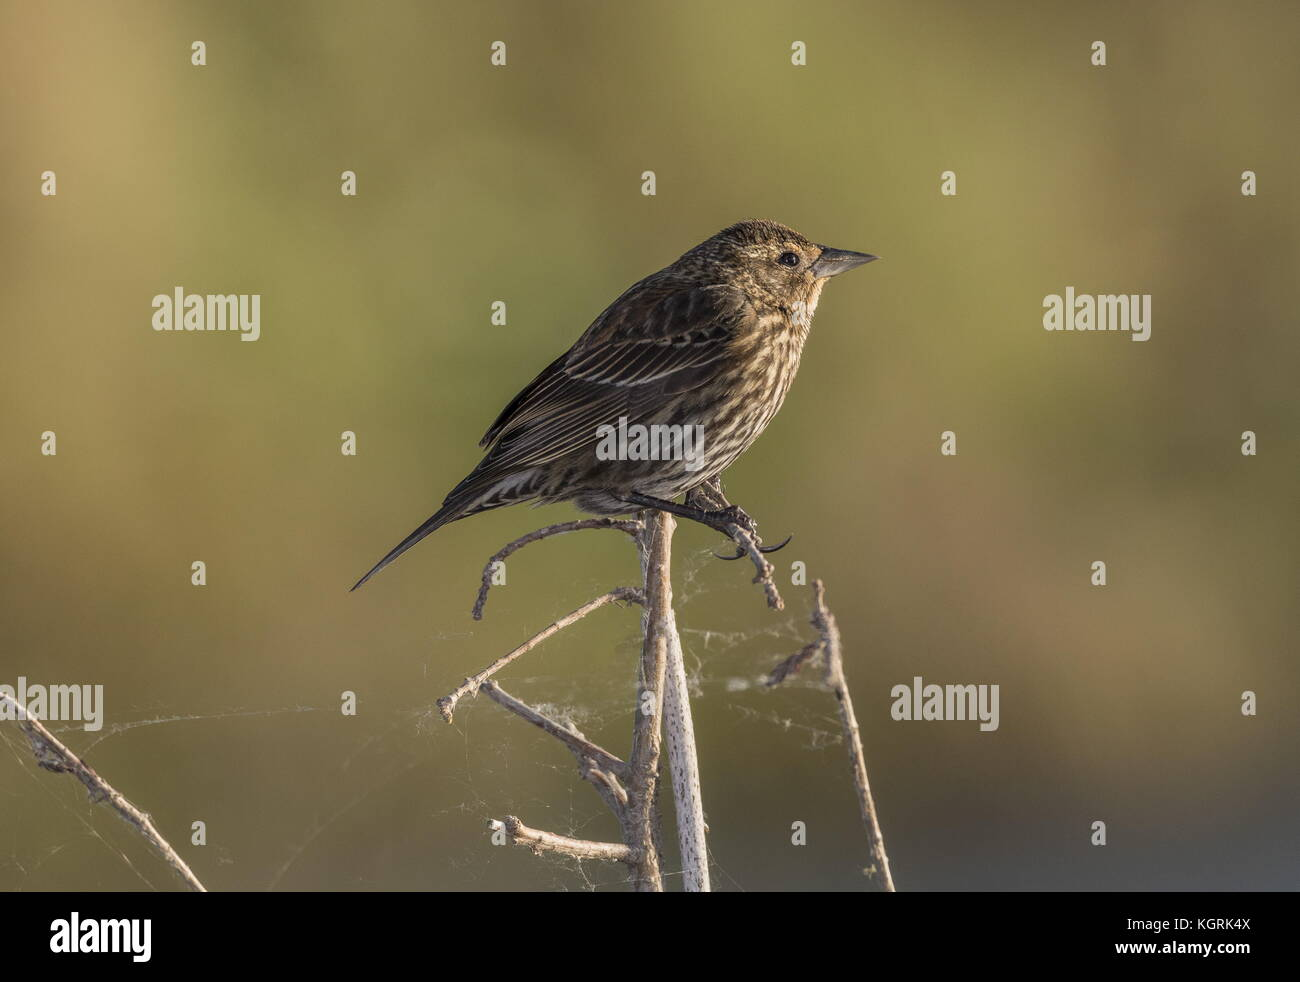 Savannah sparrow, Passerculus sandwichensis, in winter plumage, perched on waterside vegetation. Florida. Stock Photo